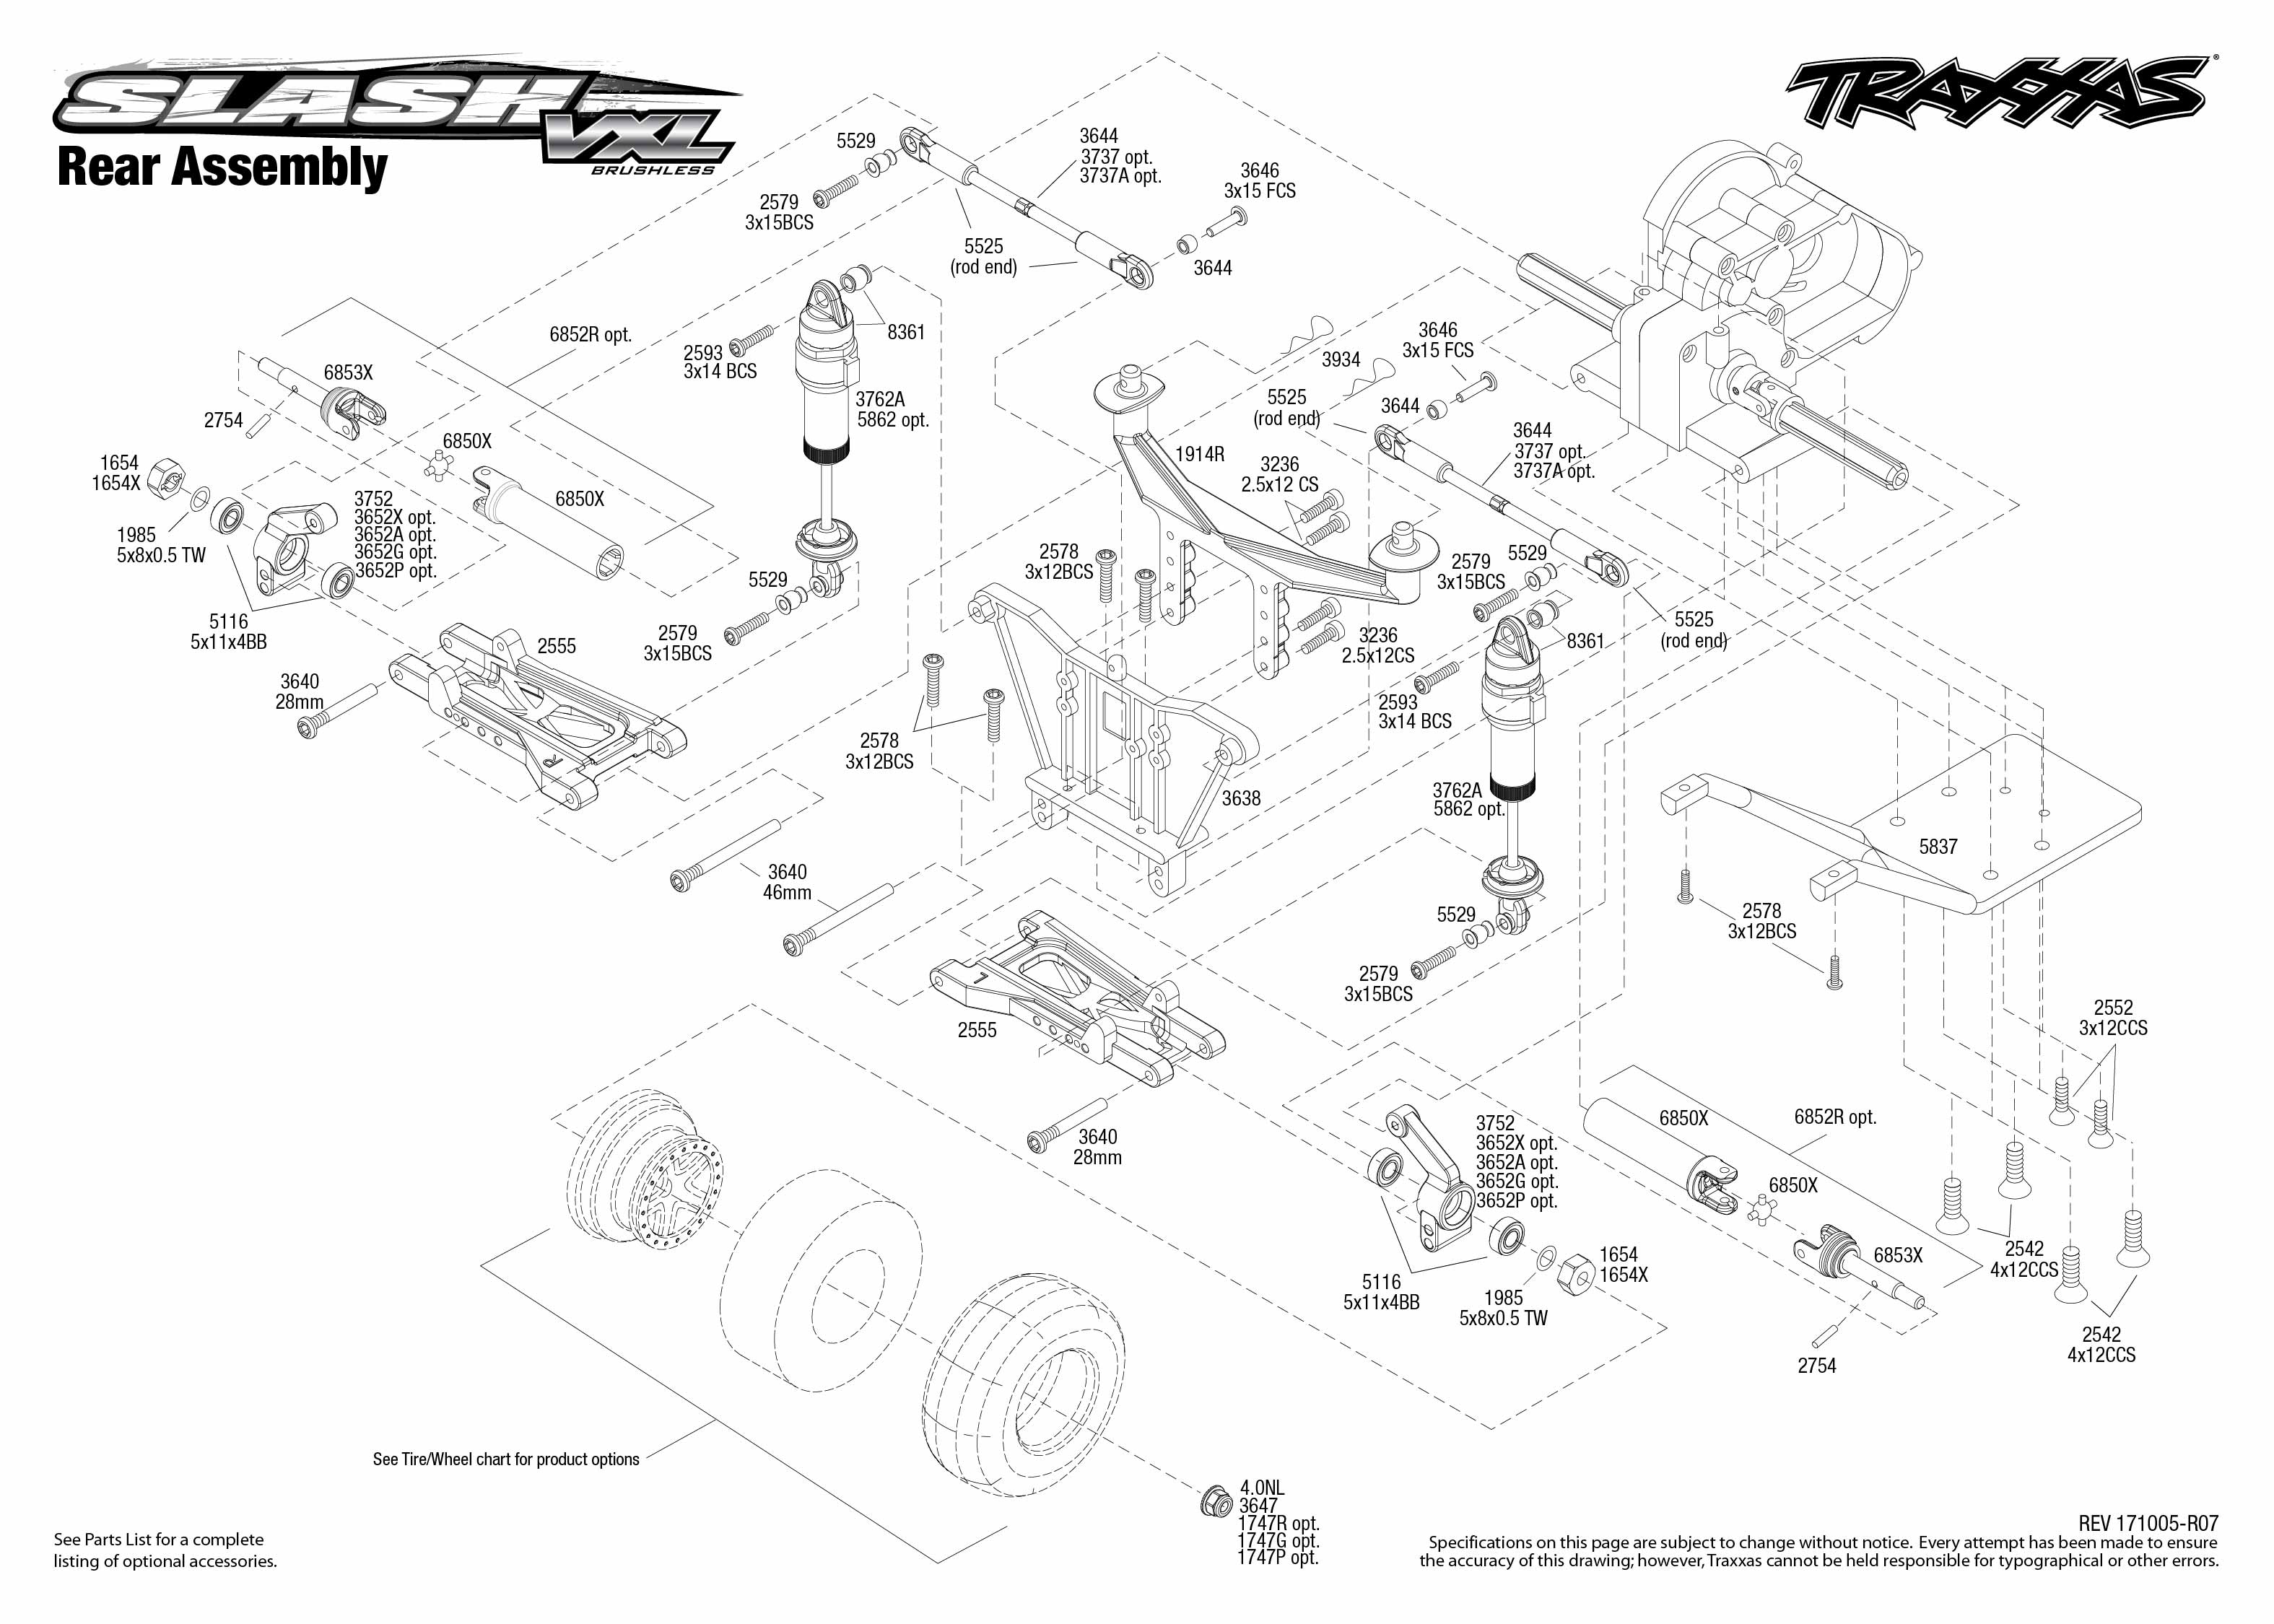 [DIAGRAM_38IU]  CV_7643] Slash Parts Diagram Wiring Diagram Schematic | Traxxas 2 5 Engine Diagram |  | None Xolia Mohammedshrine Librar Wiring 101